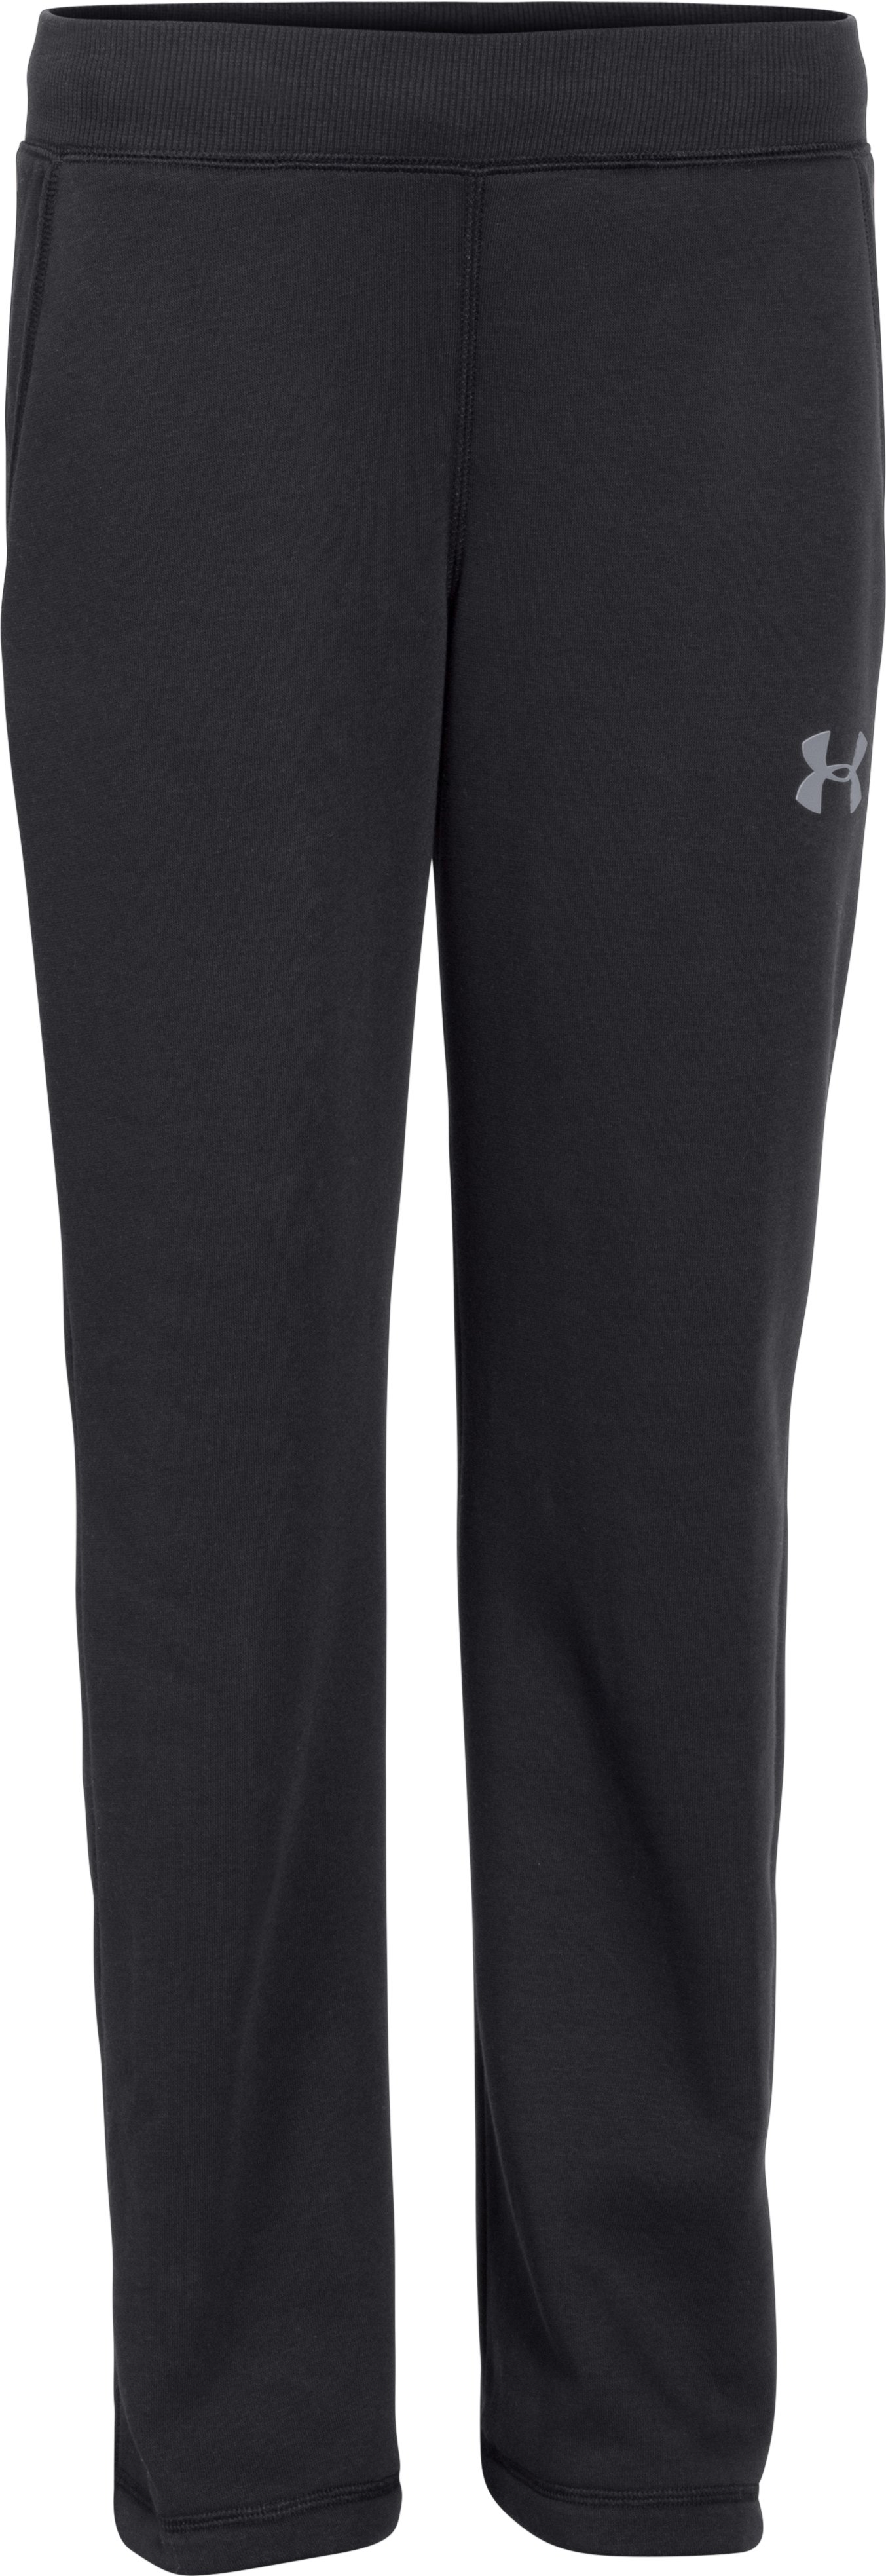 Boys' UA Rival Fleece Pants, Black